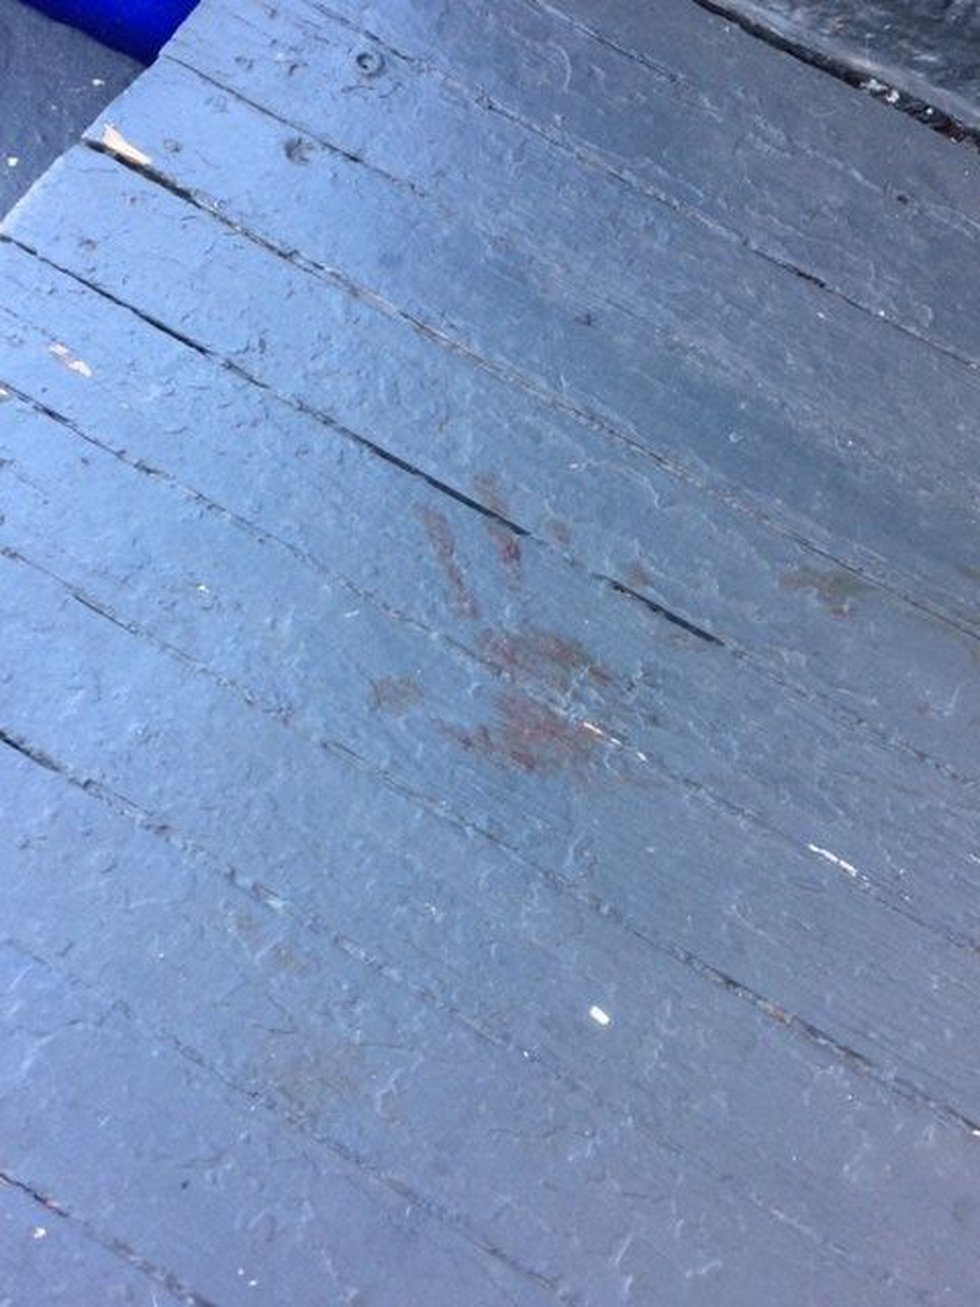 Bloody handprint on front porch after dog attack. (Source: WOIO)